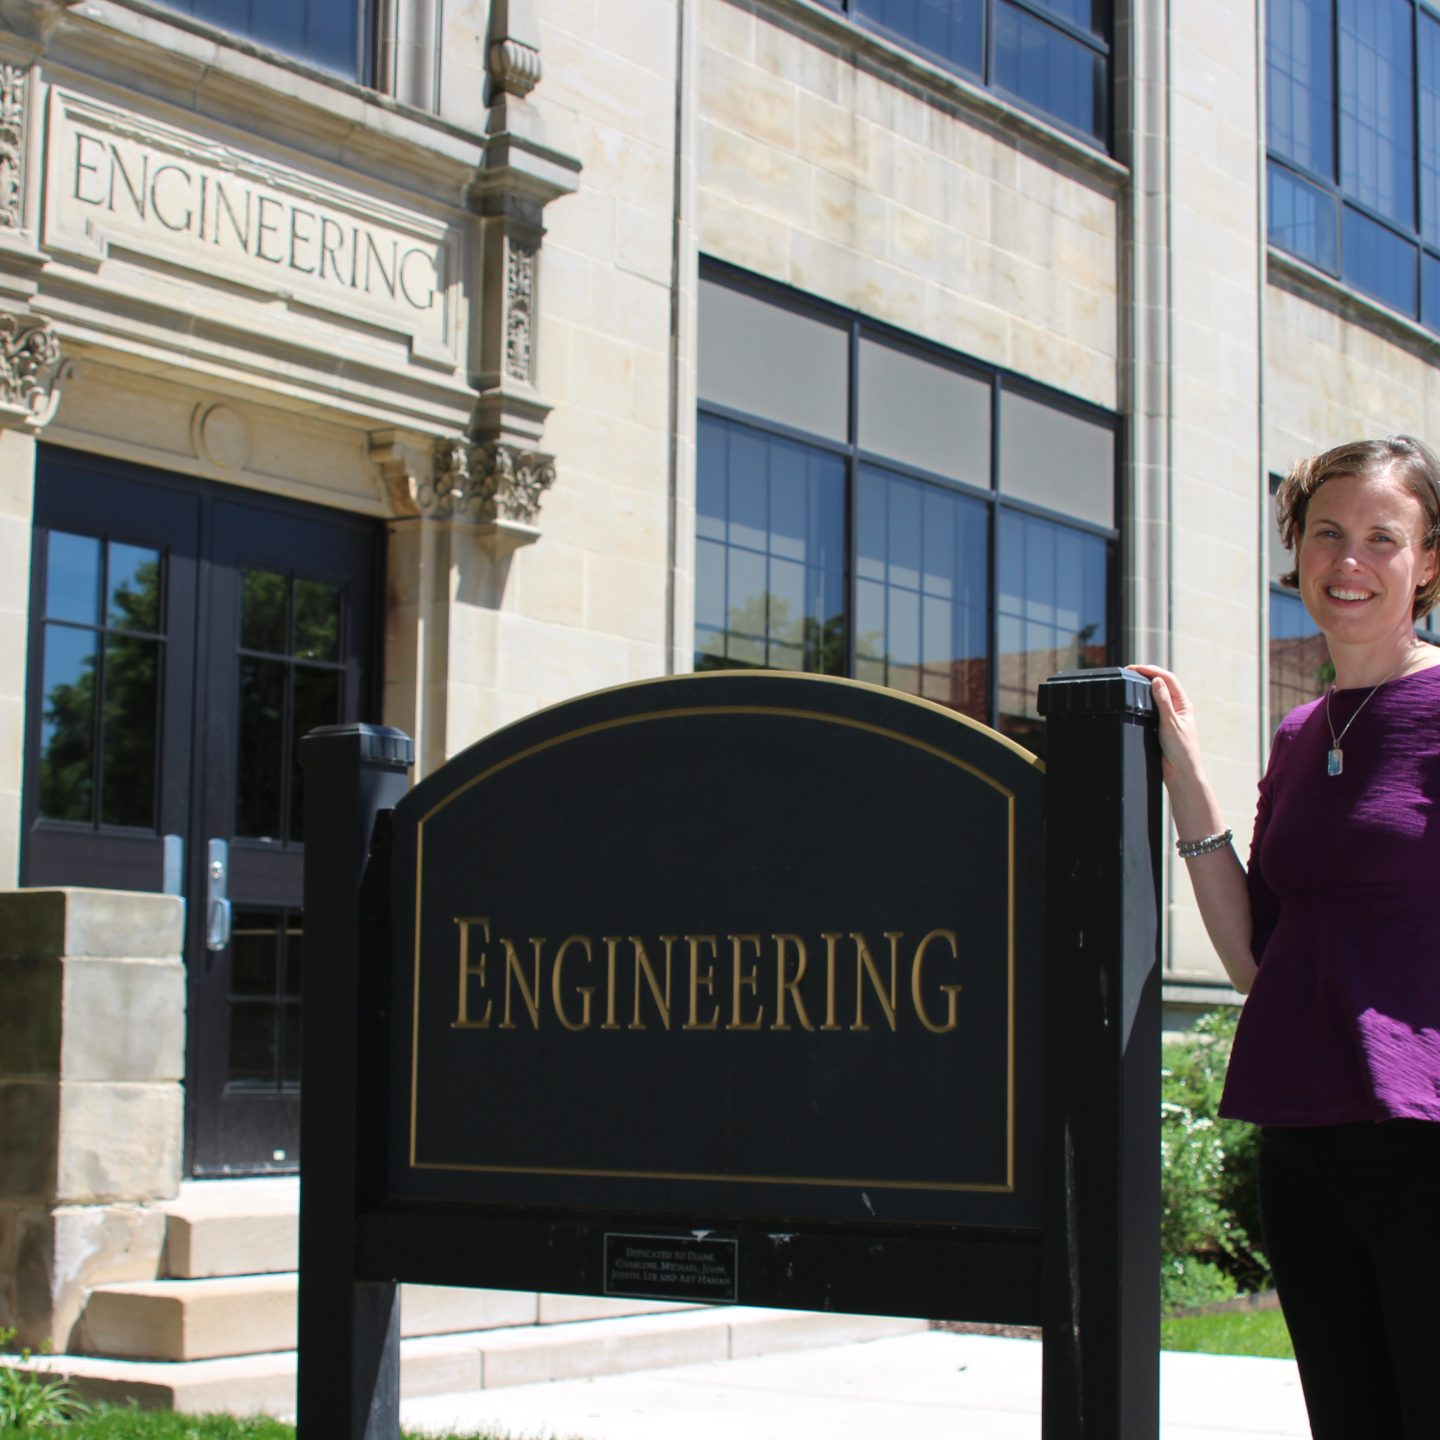 Clare Boothe Luce grant helps build new future for women in engineering